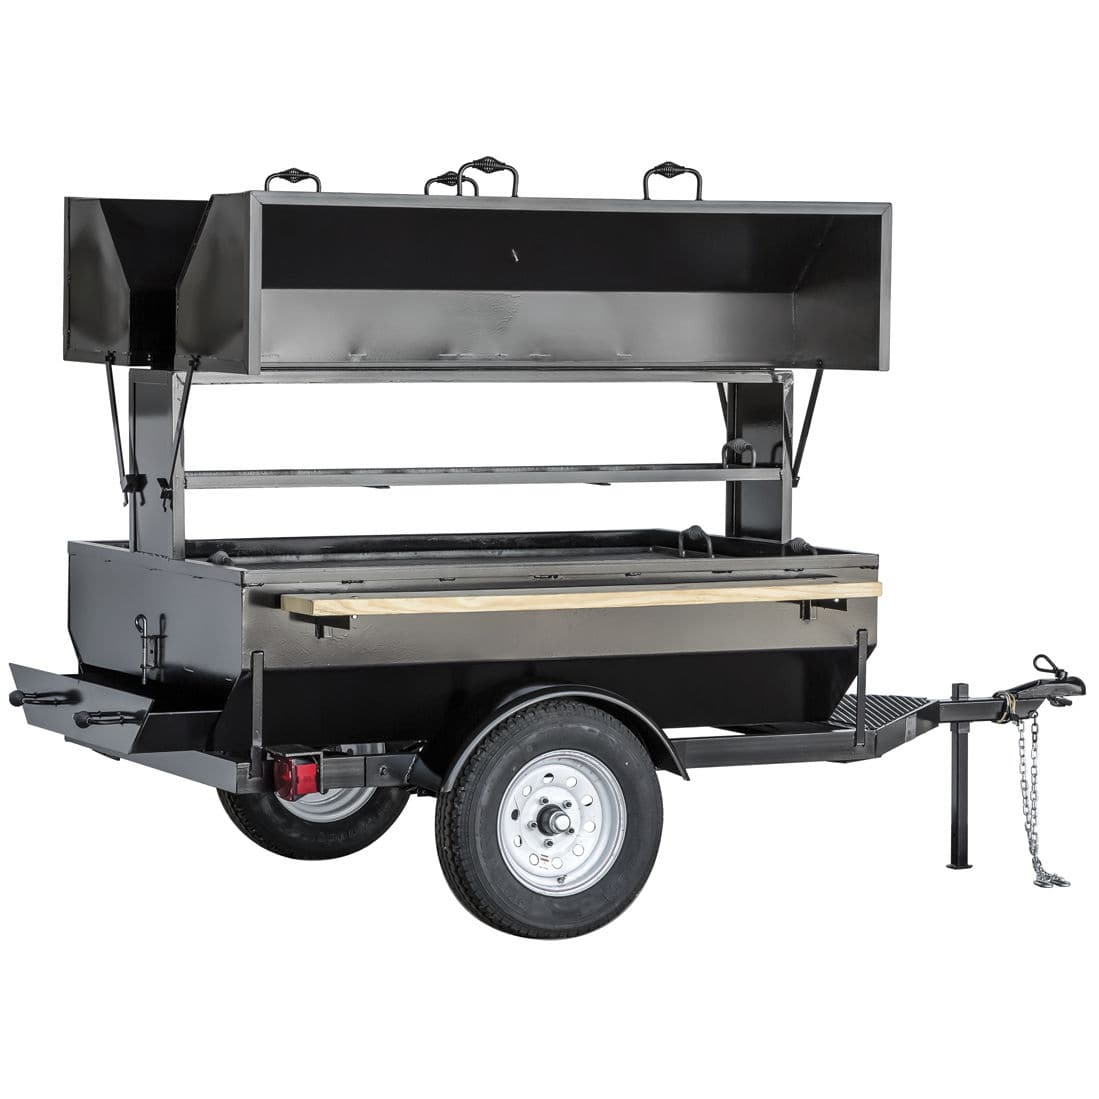 Charcoal barbecue stainless steel commercial 6ddg big john grills rotisseries